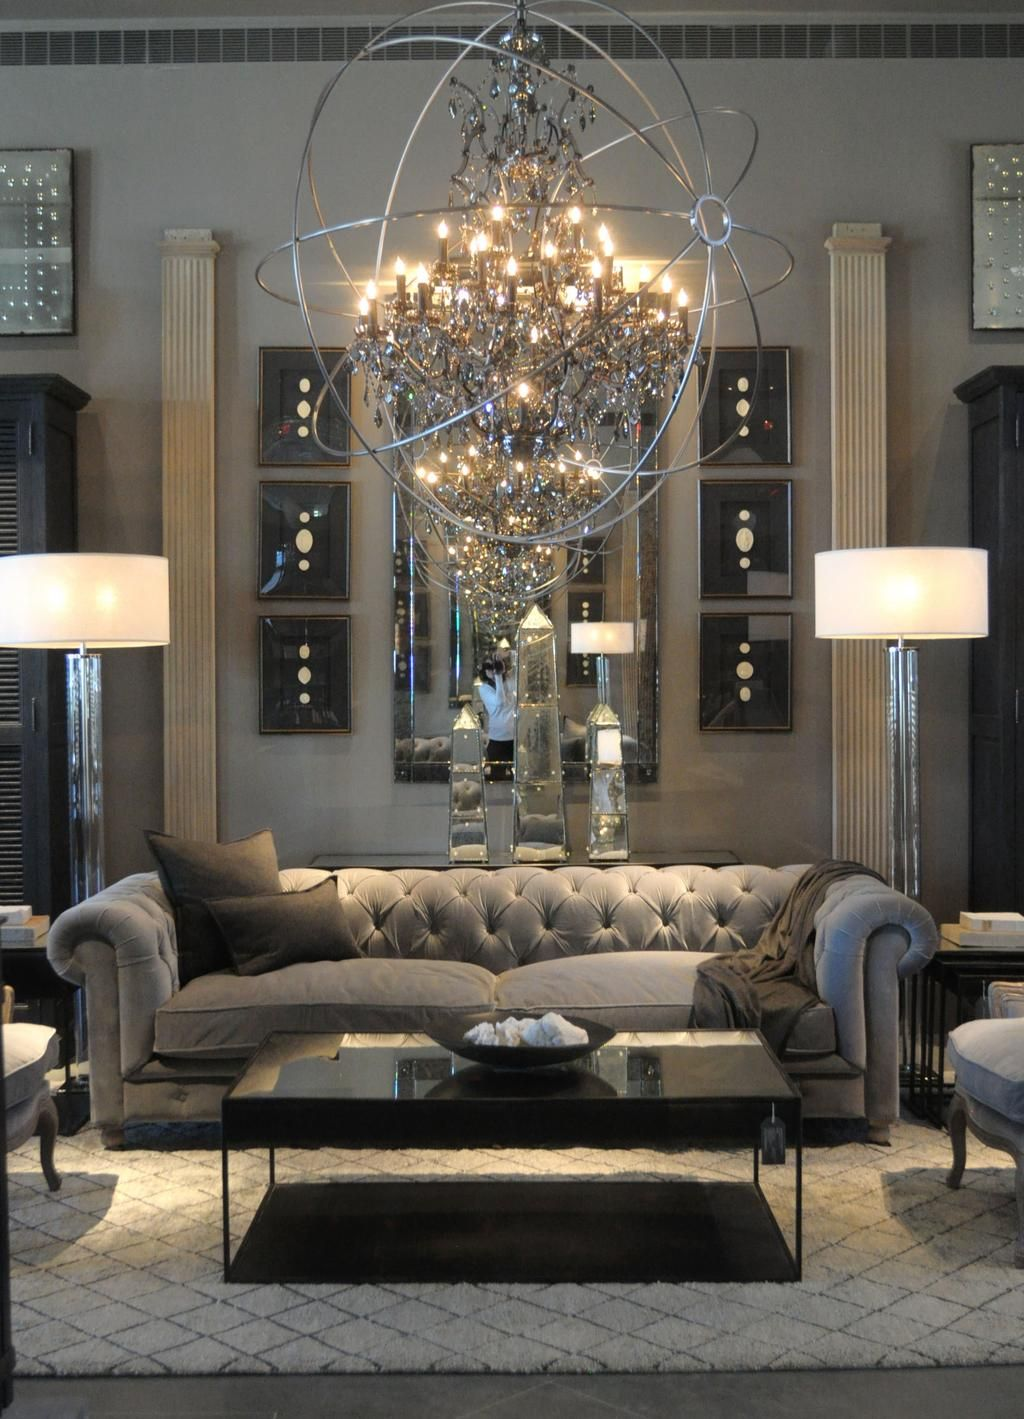 Look Inside Restoration Hardware's New Rh Atlanta Design Gallery Amusing Living Room Design Photos Gallery 2018